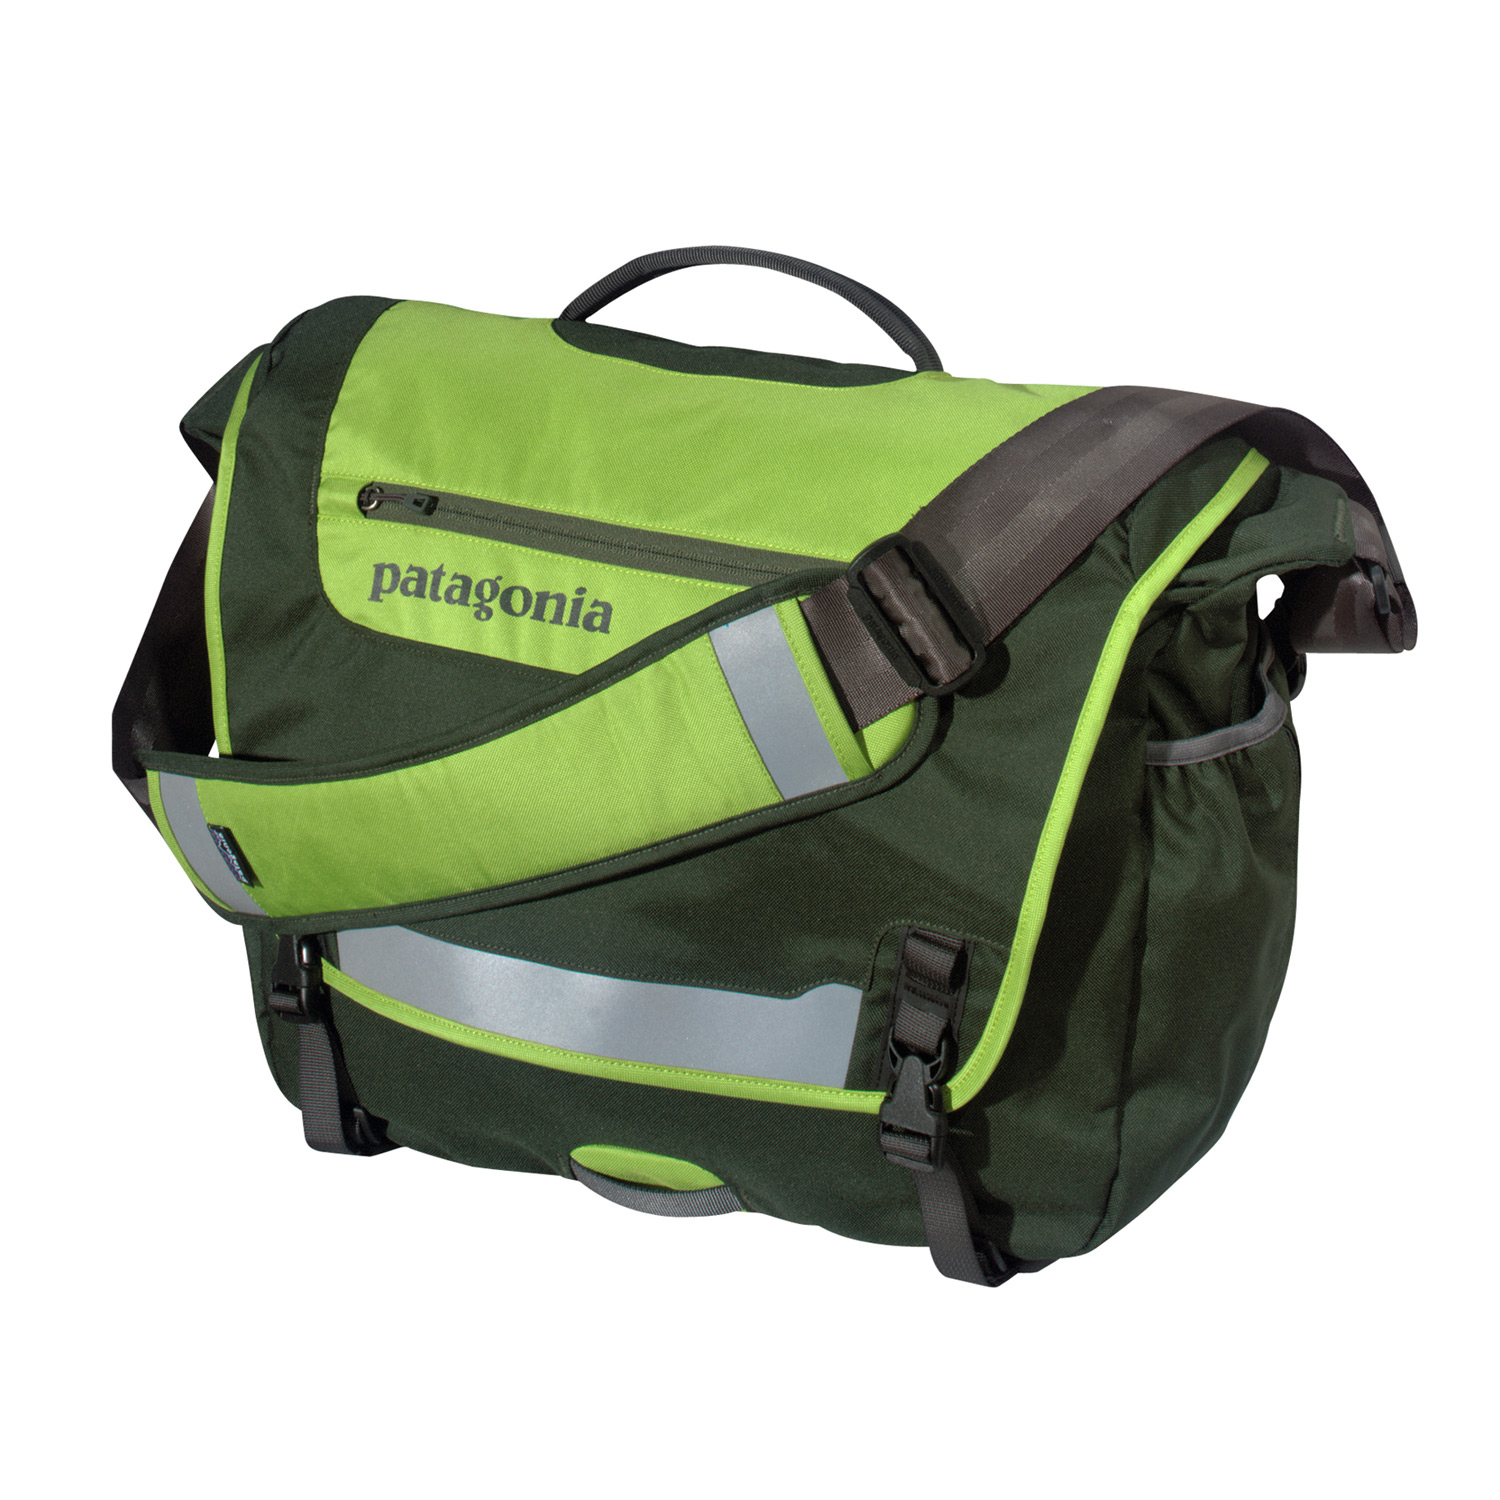 MTB Patagonia's best-selling courier bag made of recycled polyesterKey Features of the Patagonia Half Mass Bag: Main flap opens to largest compartment, which houses one drop pocket, one mesh pocket, one padded electronics pocket, three slots for pens and a discrete and secure zippered pocket; zippered pocket on flap has moisture-shedding reverse coil zipper Padded computer sleeve is raised off the ground and will accommodate up to a 17? laptop. The sleeve secures with a buckle and strap Front flap features improved reflective piping and webbing bike-light mount for visibility at night Side mounted exterior water bottle pocket Interior drop pocket secures with hook and loop tab for quick access to boarding passes, magazines or newspapers Fully adjustable shoulder strap with floating pad, three point adjustable stability strap and top side carrying handle 22 L / 1343 cu in (1 lb 13.4 oz) 833 g Fabric: Body: 8.4-oz 600-denier 100% recycled polyester. Lining: 3.3-oz 200-denier polyester. Both with a polyurethane coating - $62.95